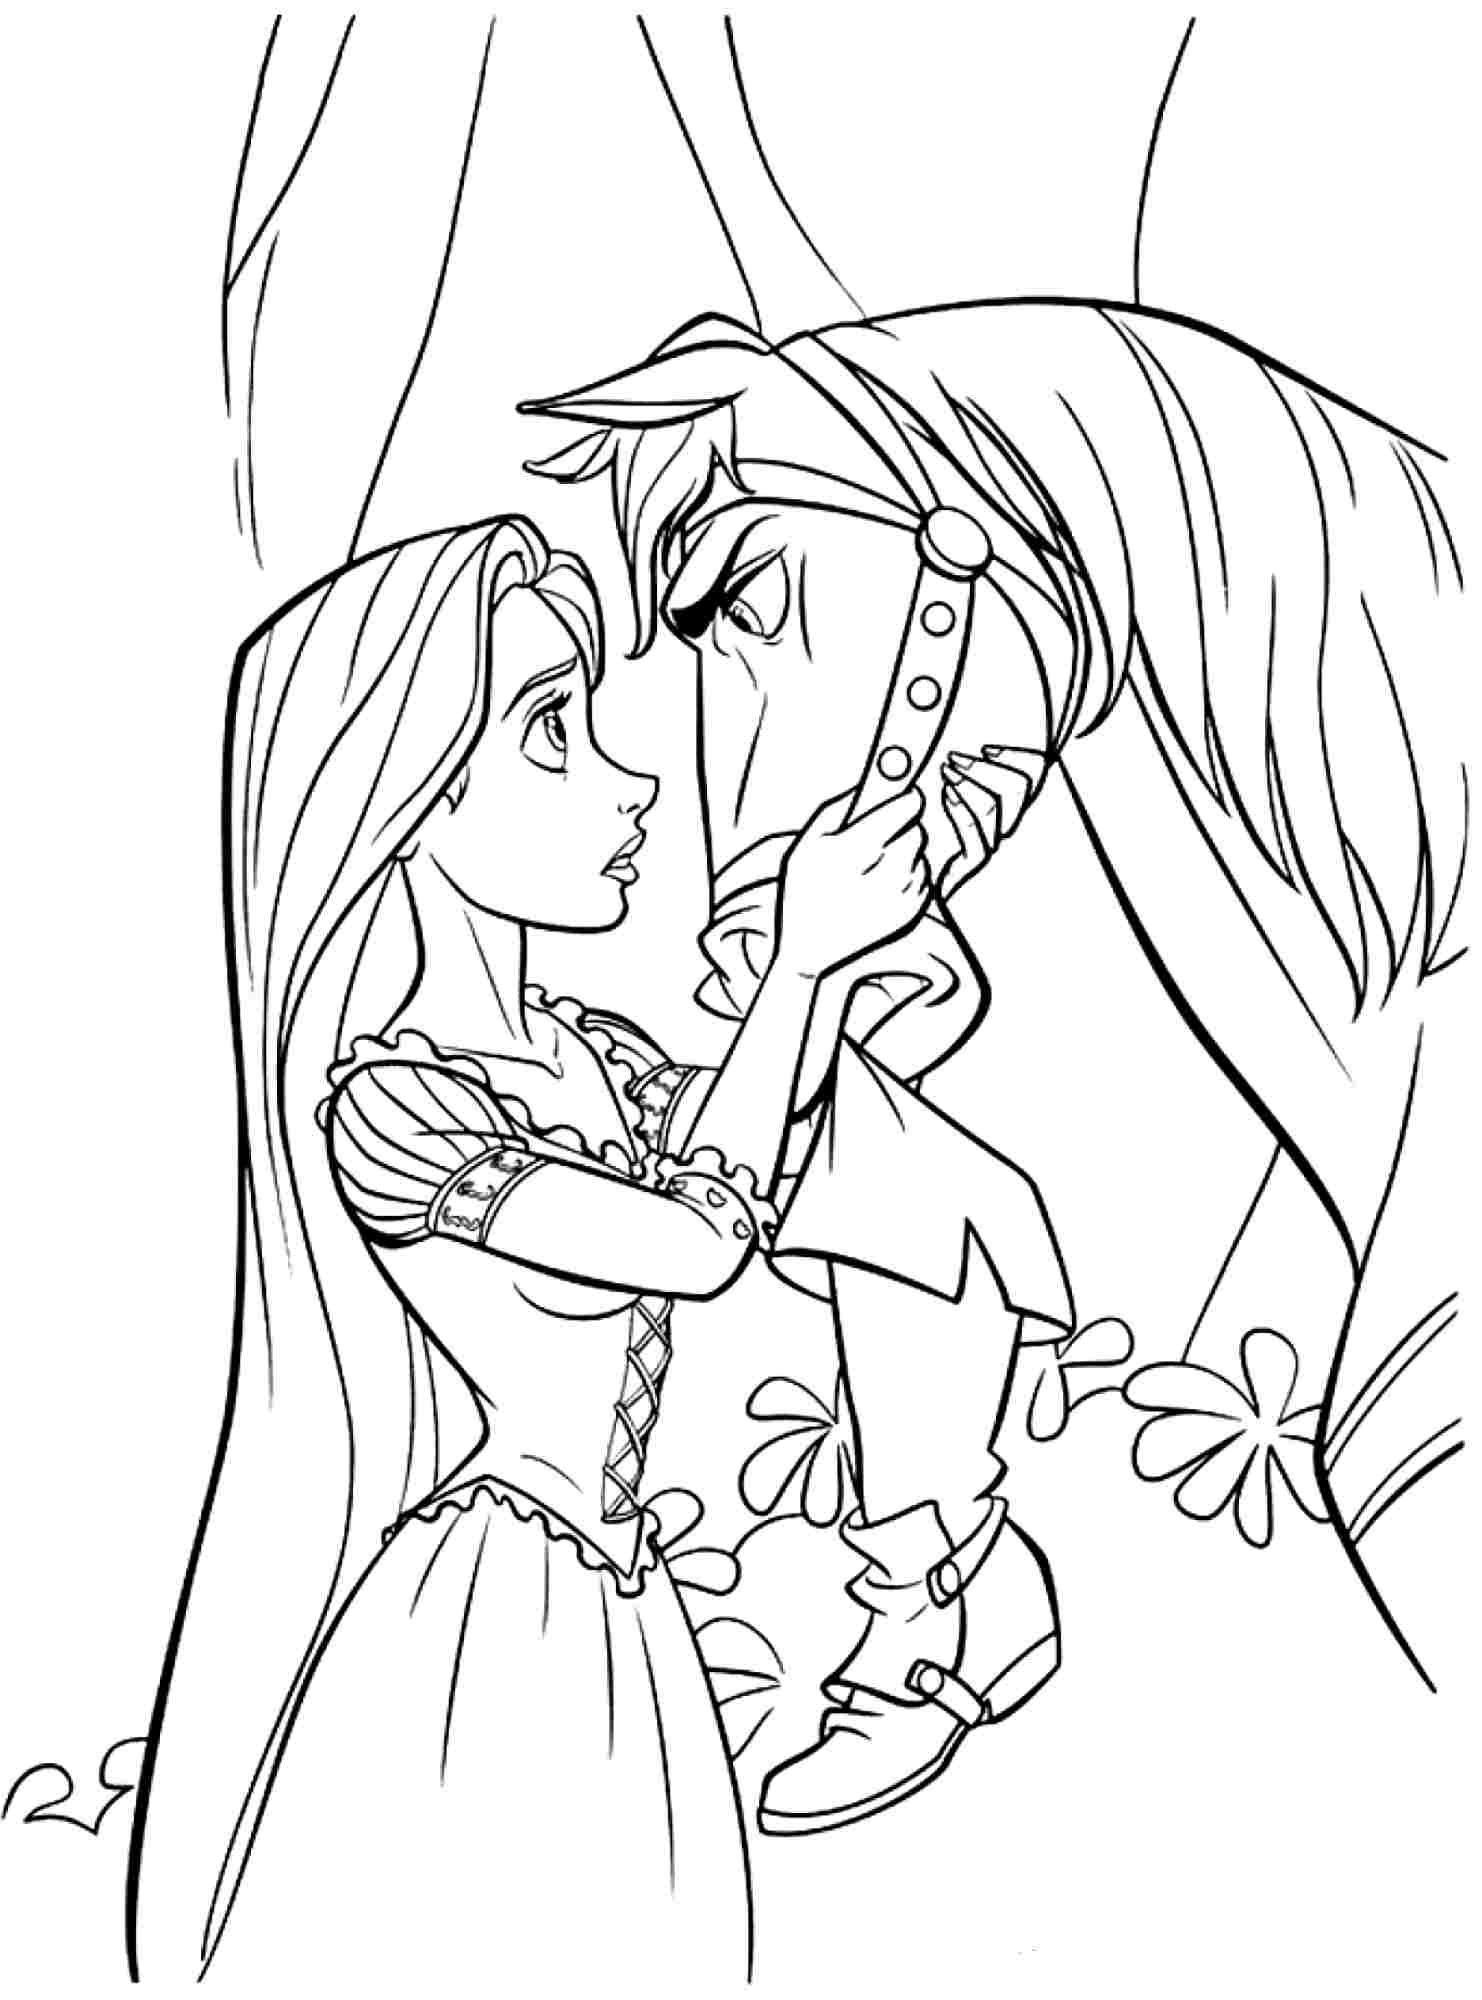 Tangled Coloring Pages For Girls  free disney princess tangled rapunzel coloring sheets for